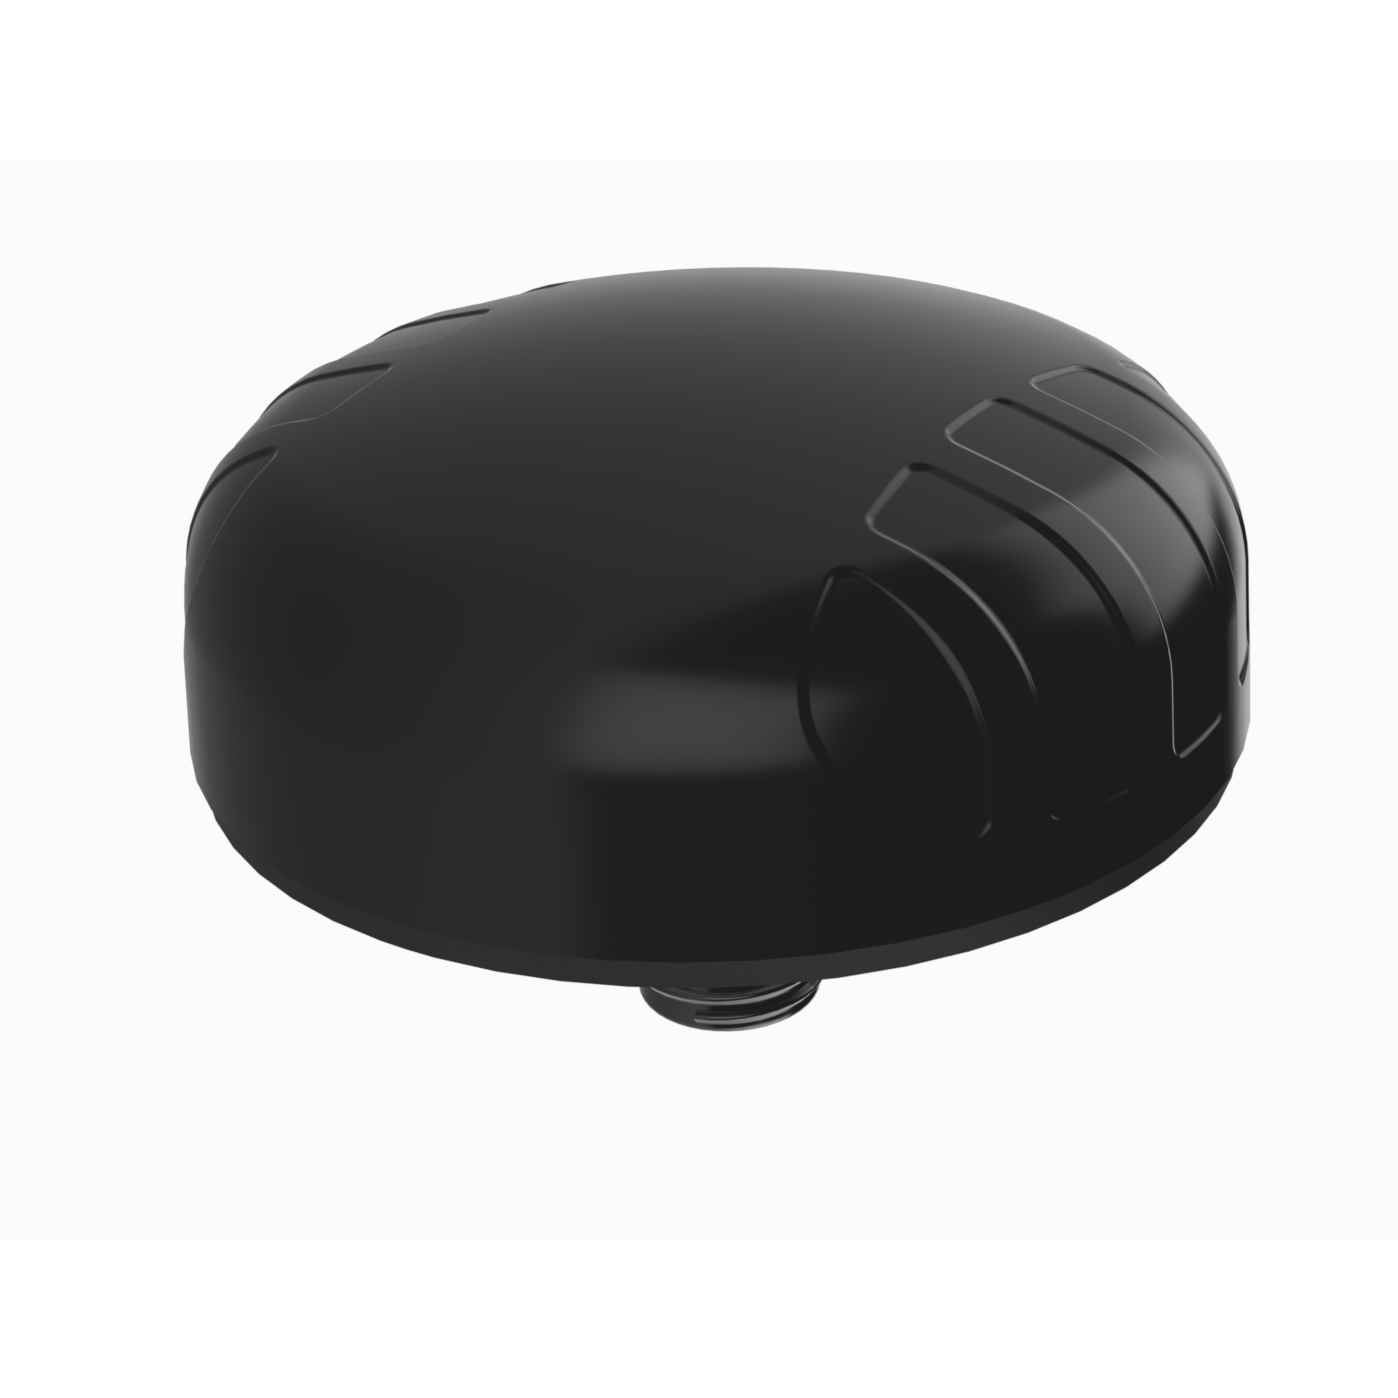 PUCK-2:2-IN-1 HIGH PERFORMANCE, SMALL SIZE ANTENNA; 2×2 MIMO LTE: 690 MHZ – 3800 MHZ